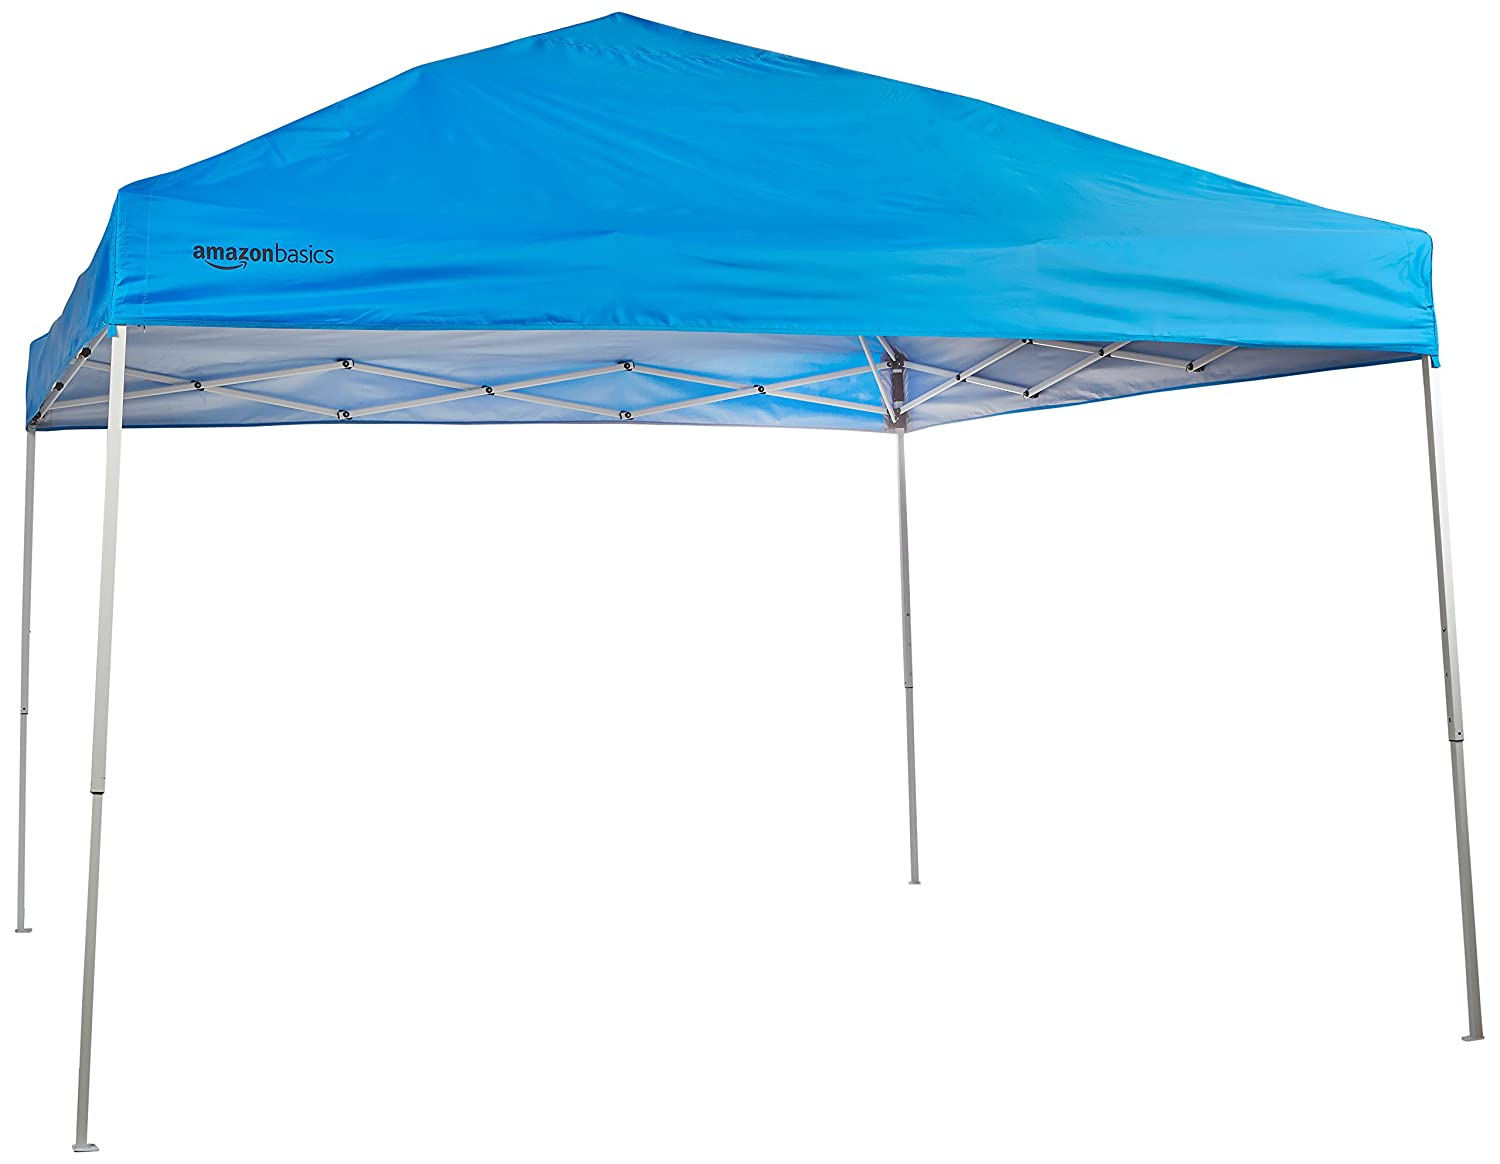 best website ad258 409fd AmazonBasics Pop-Up Canopy Tent - 10' x 10', Blue